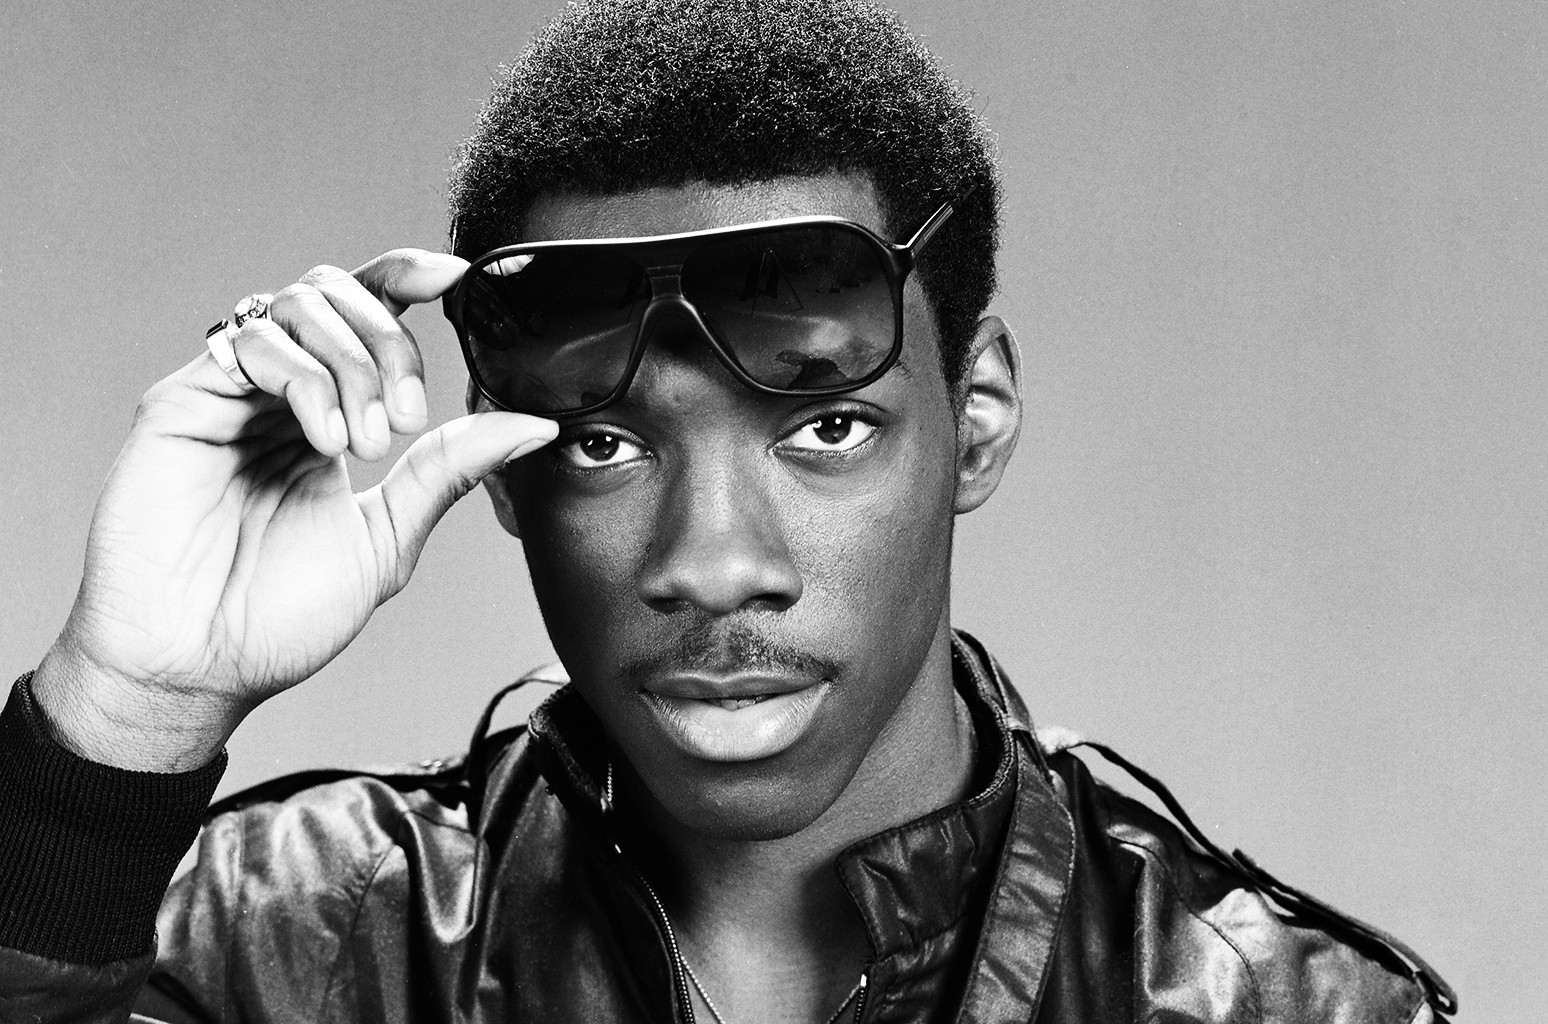 Eddie Murphy photographed for Saturday Night Live in the 1980s.